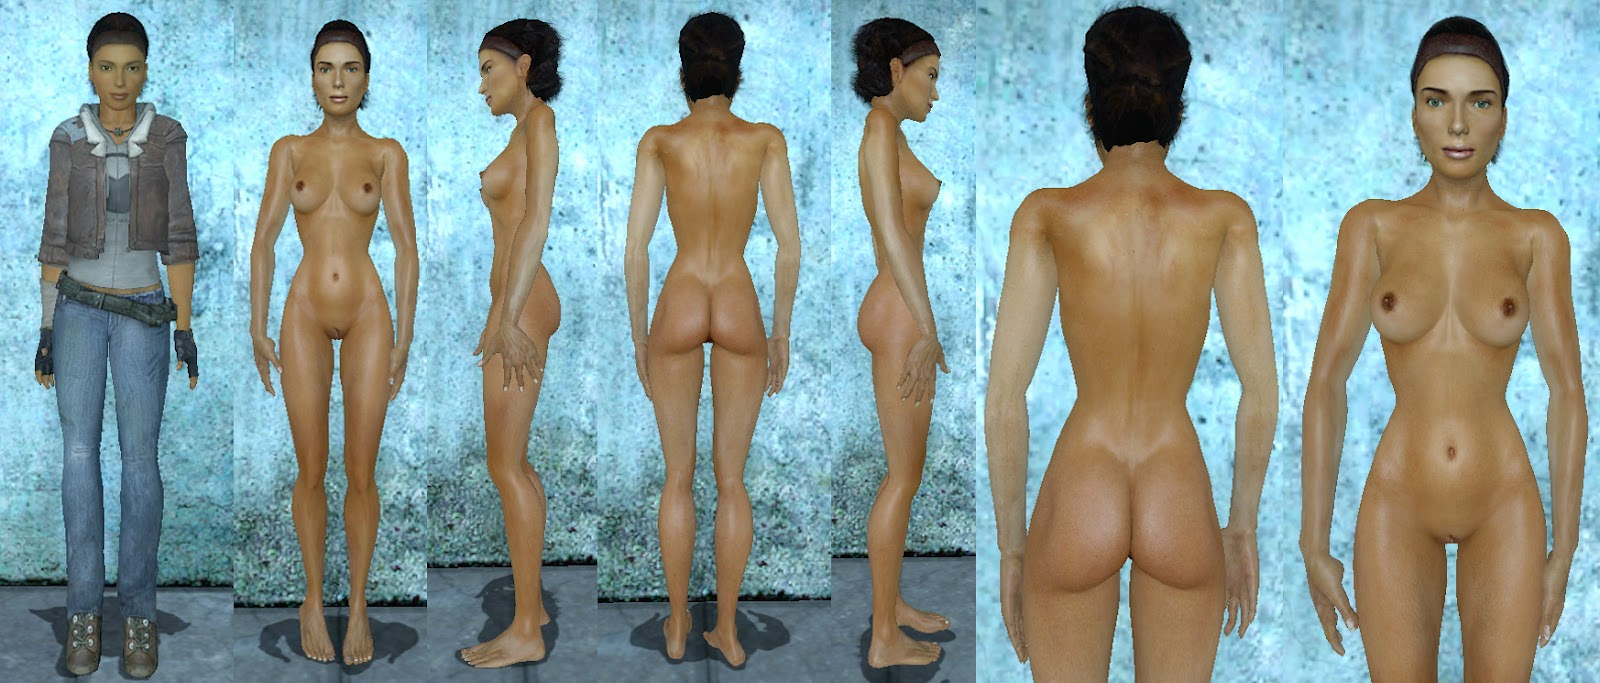 Nude mod for kotor 2 for pc softcore photo